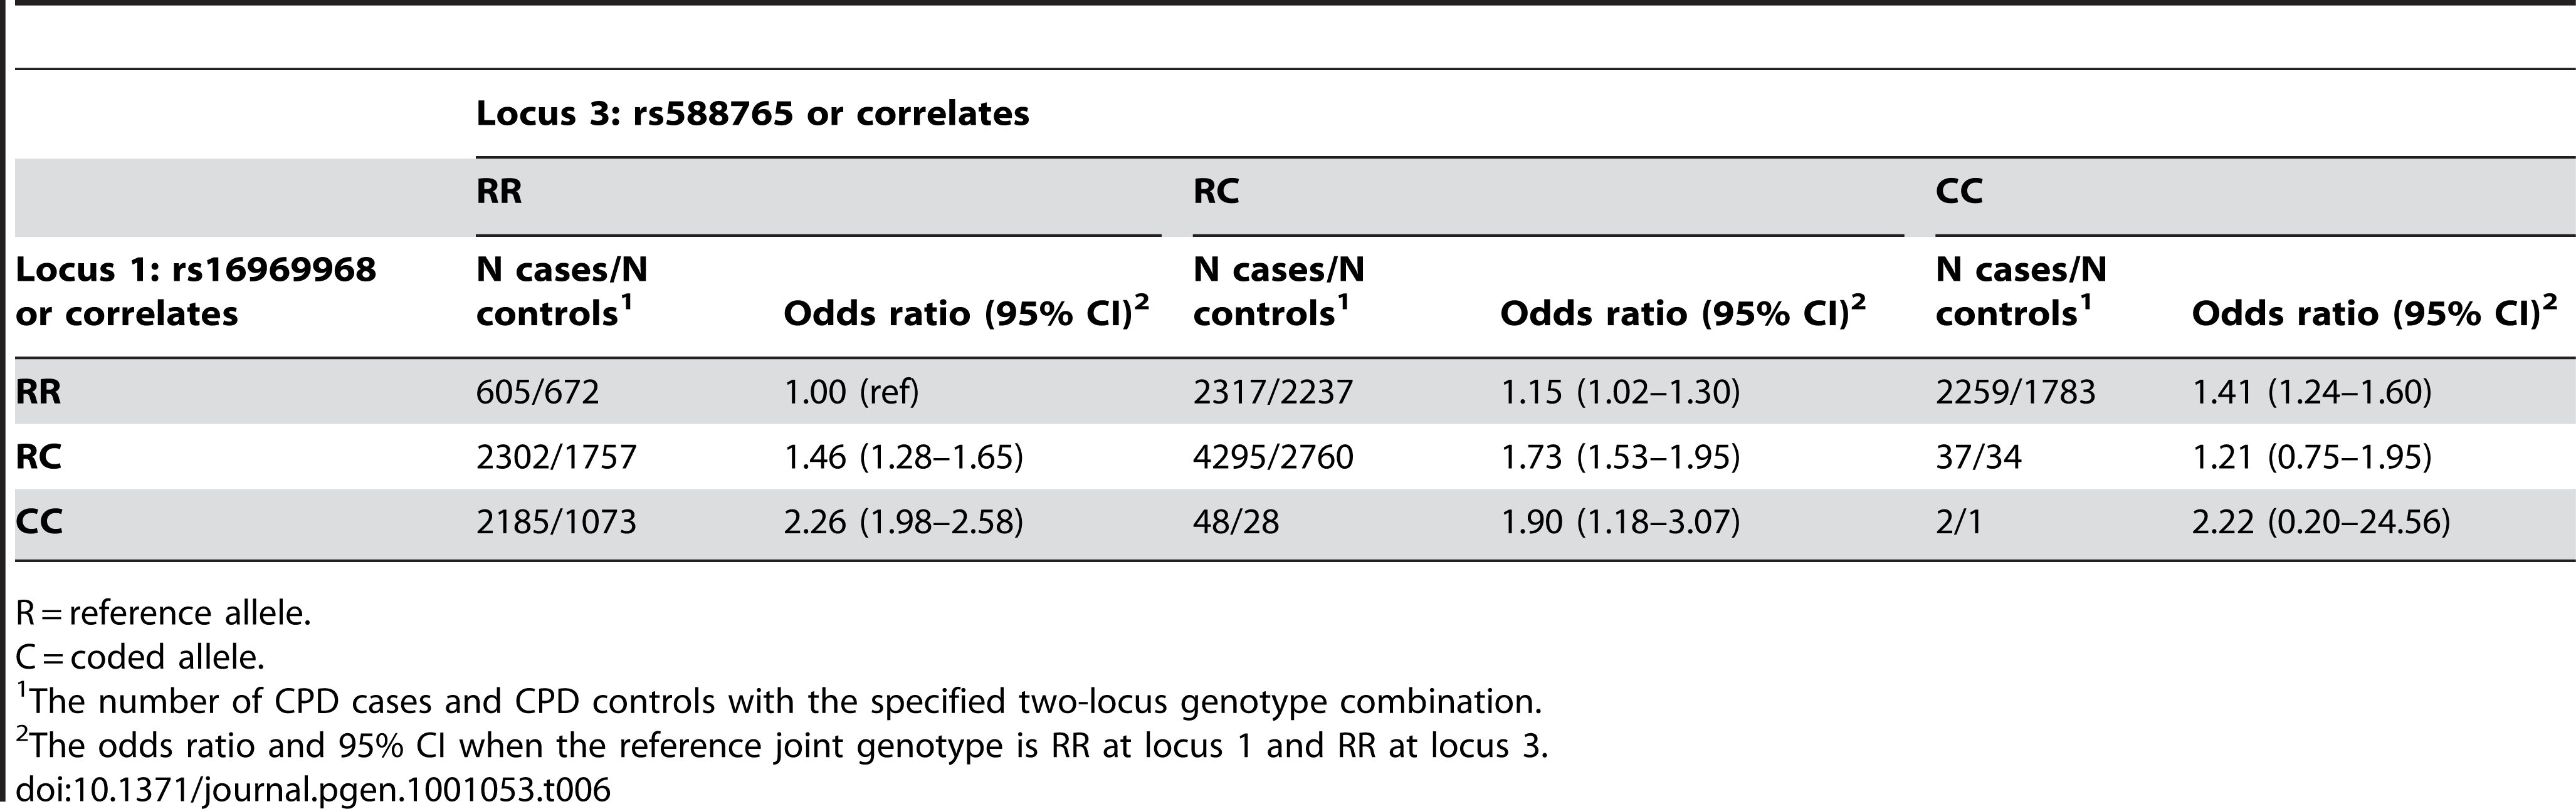 Joint genotype table for locus 1 versus locus 3 in CPD cases (heavy smokers) and controls (light smokers).